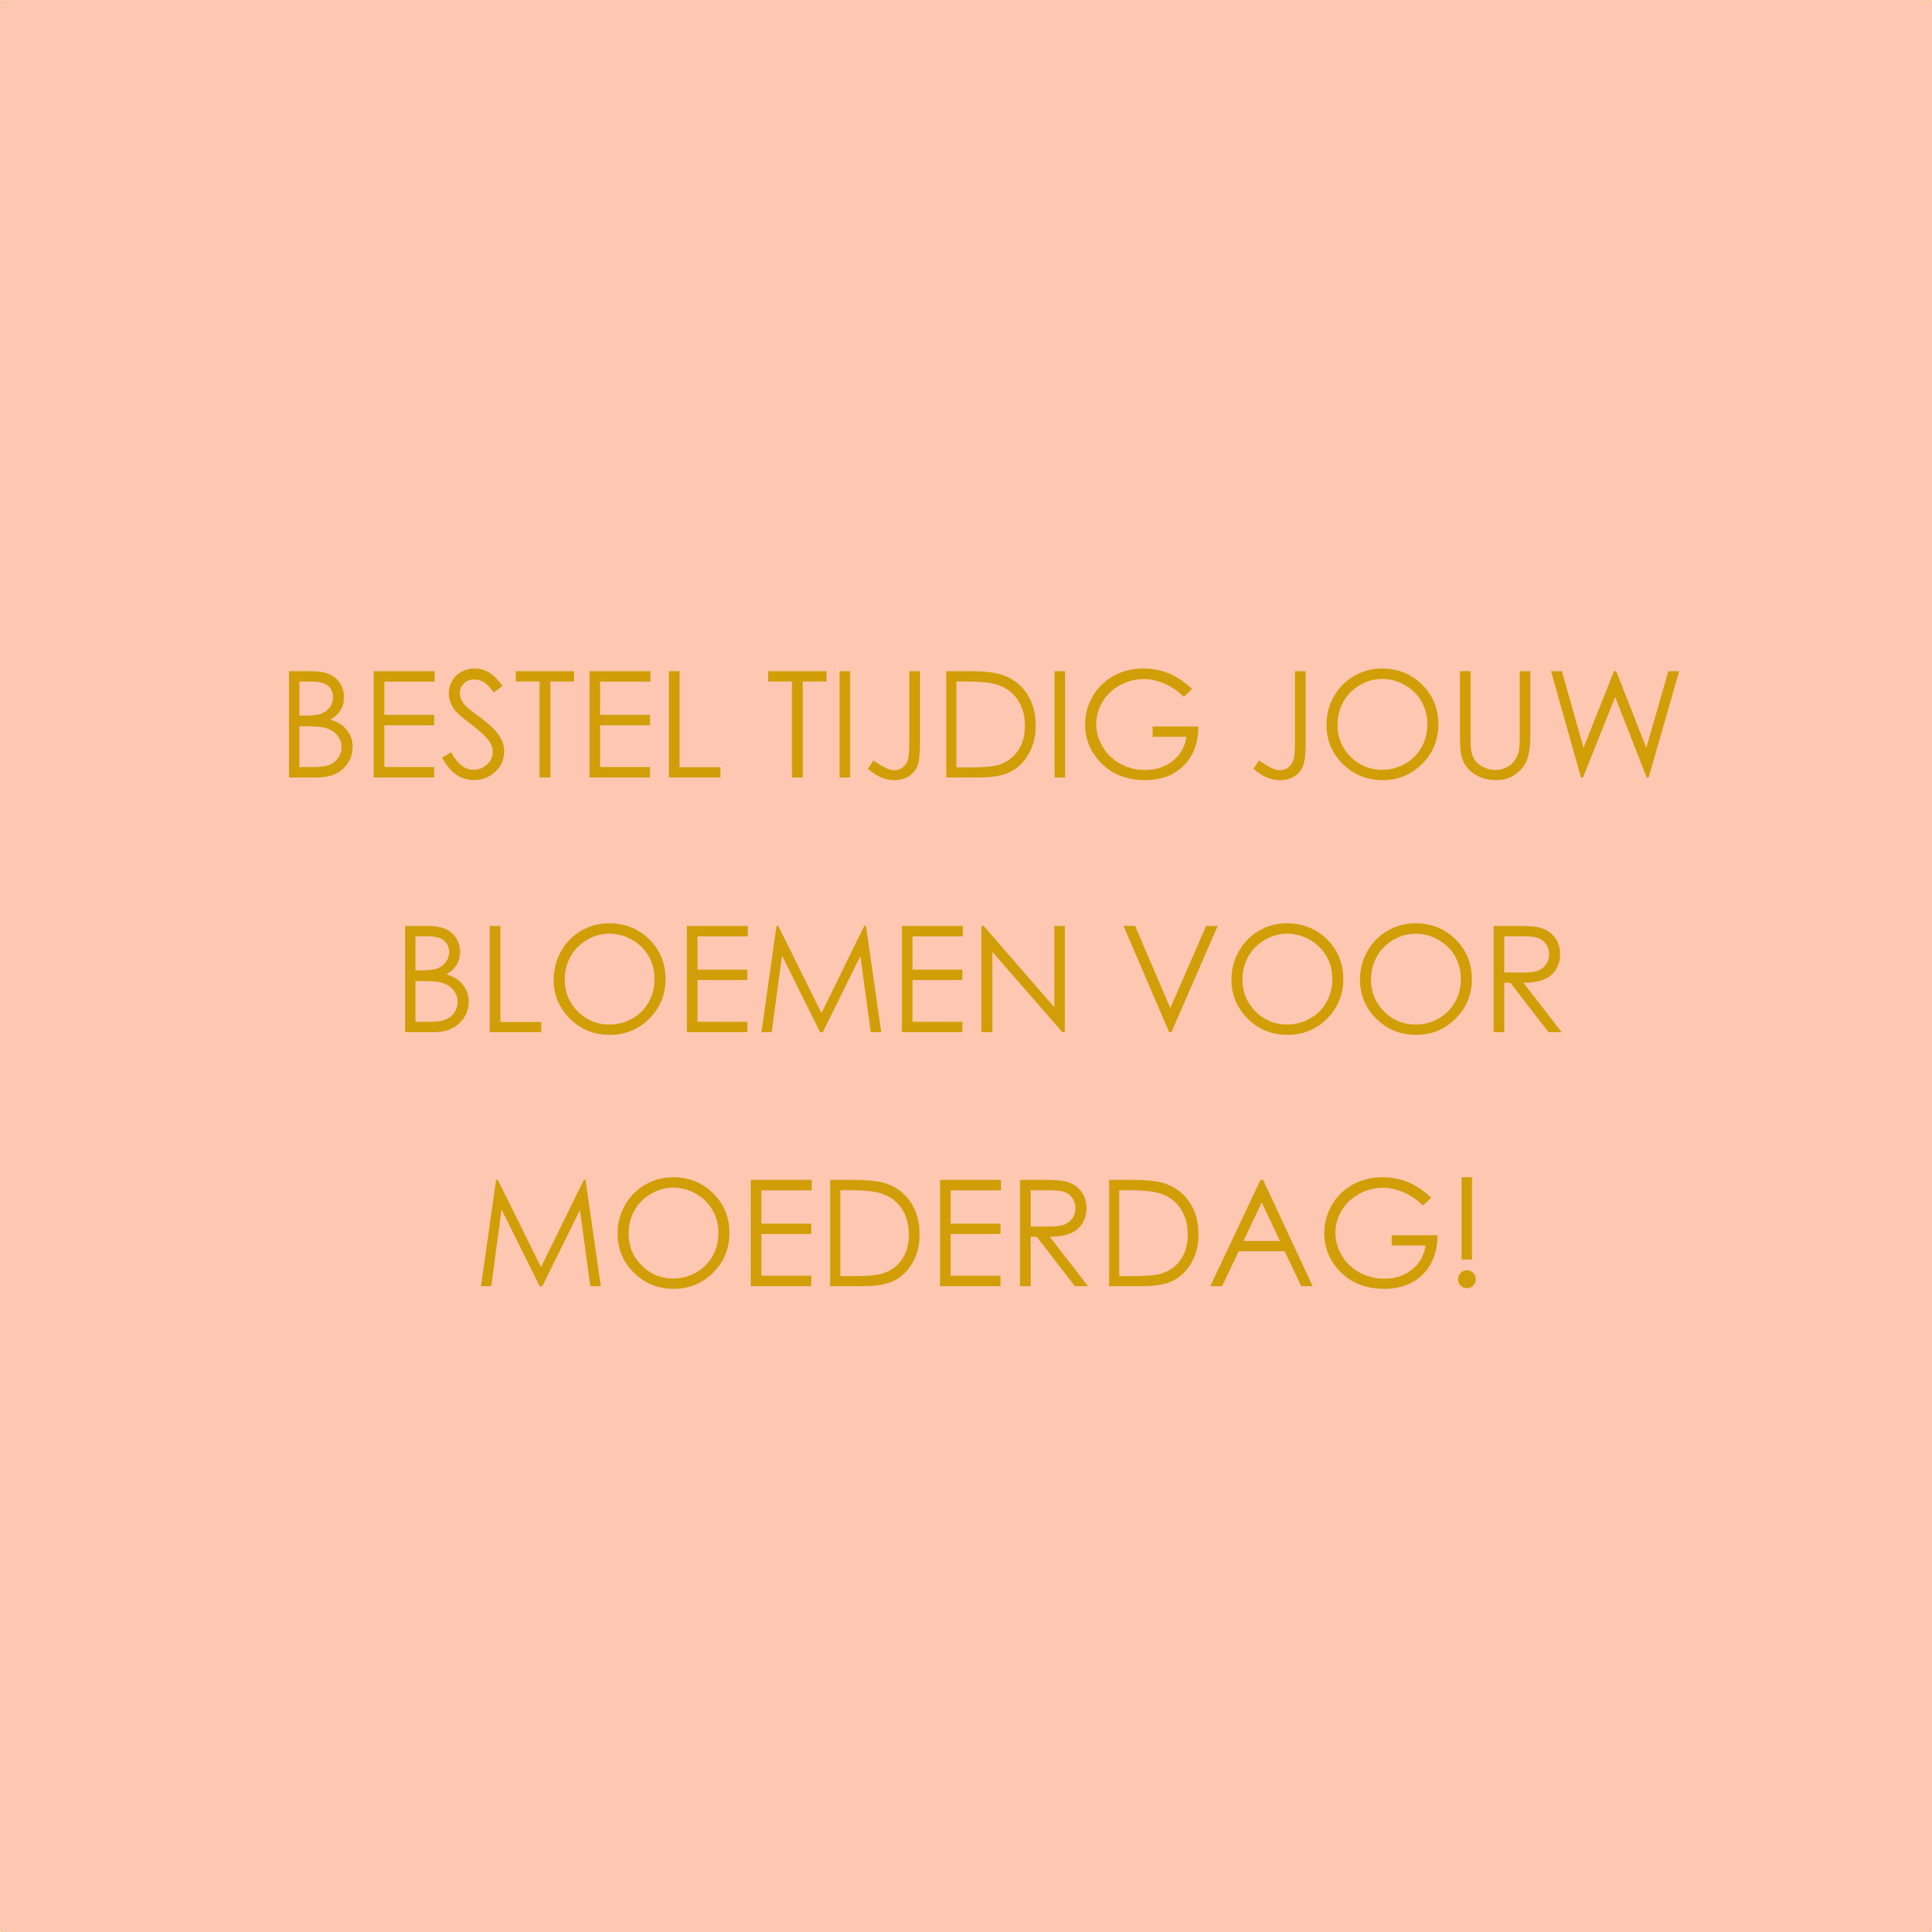 moederdag website